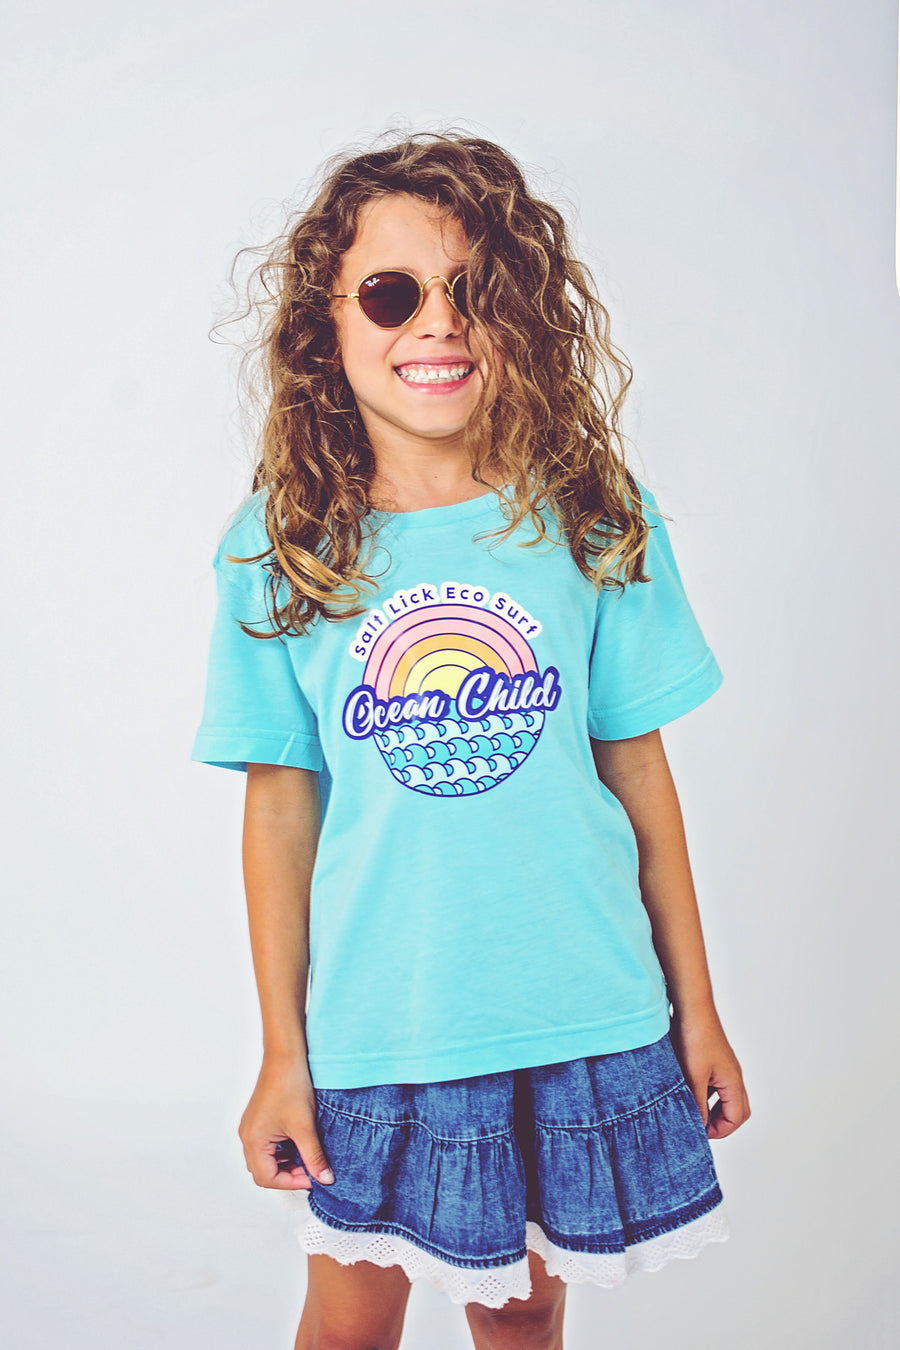 Kiddies unisex tee's